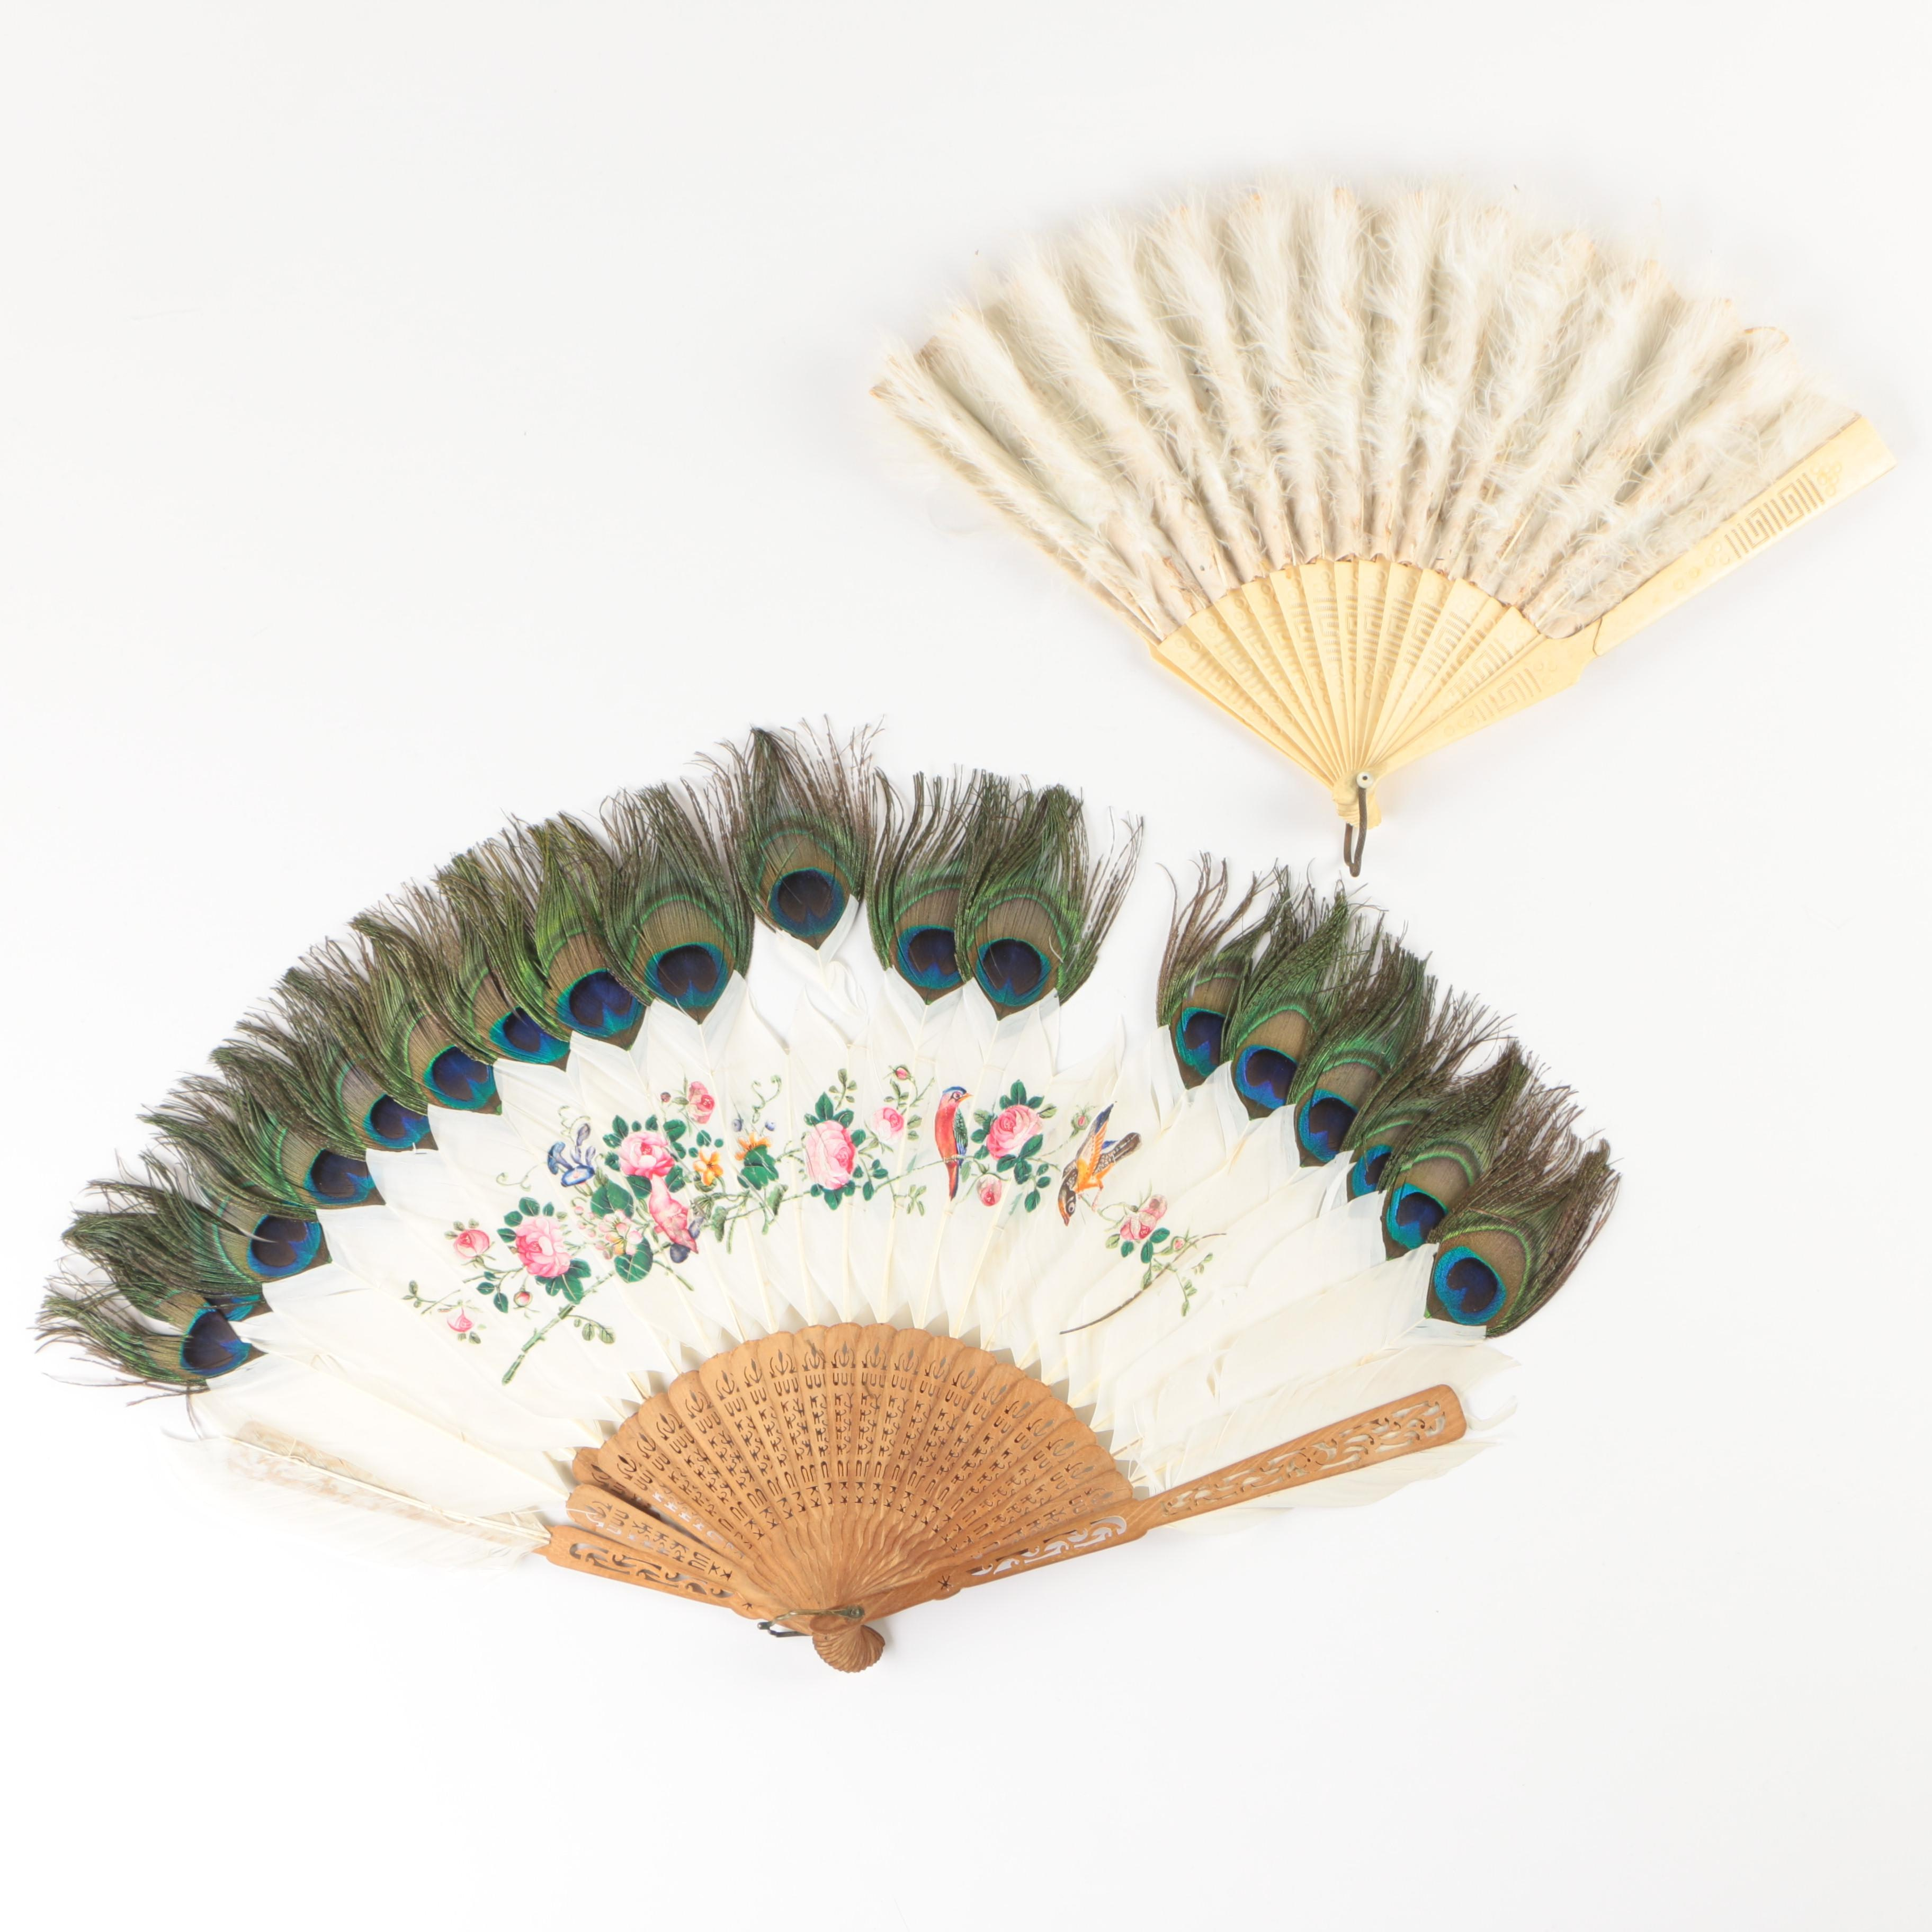 Antique Carved Bone and Wood Folding Fans with Silk and Feather Leafs